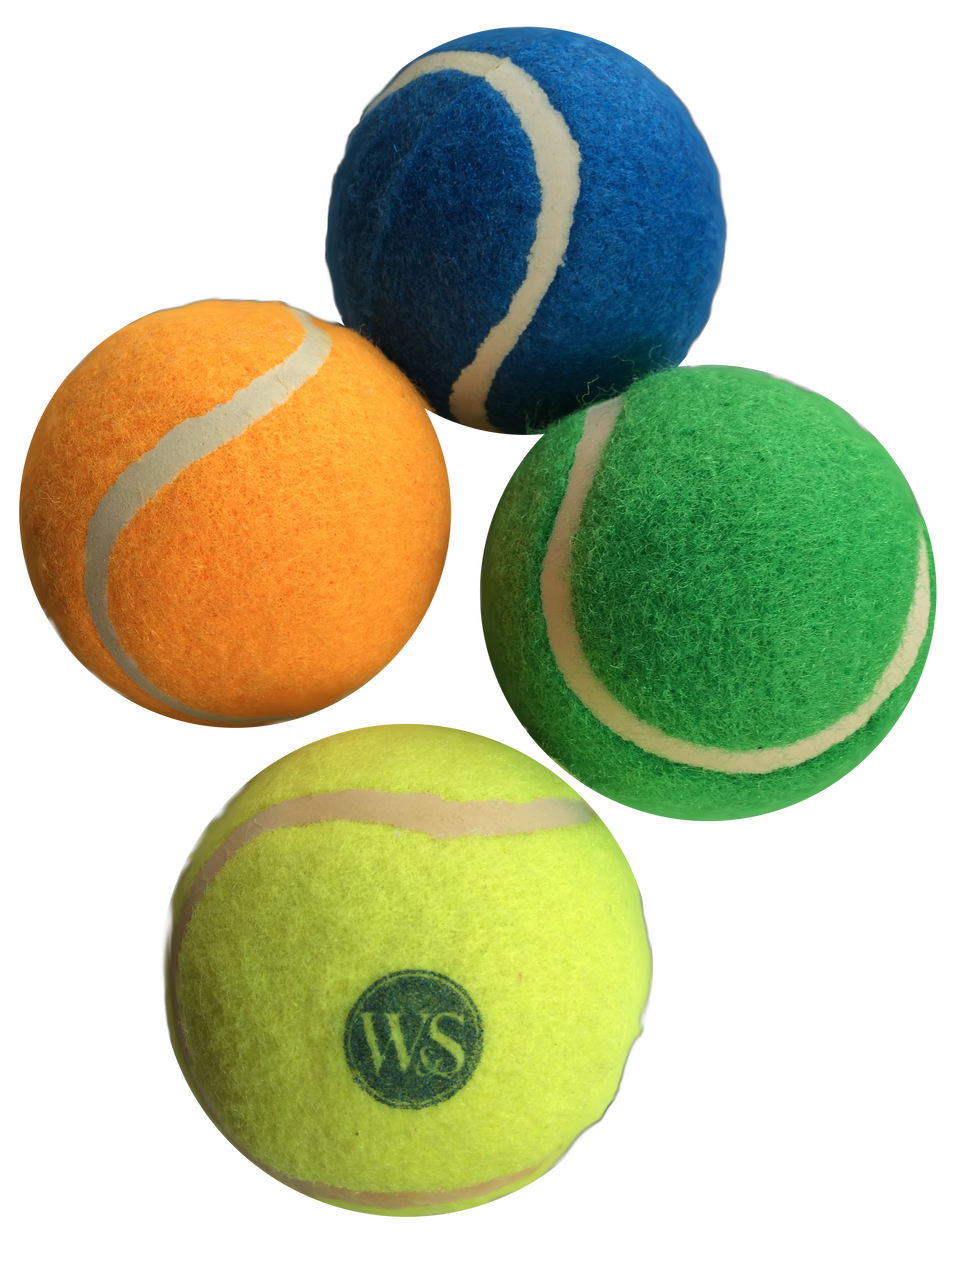 Tennis Balls For Dogs Custom Printed Tennis Balls For Dogs Tennis Balls Pet Toys